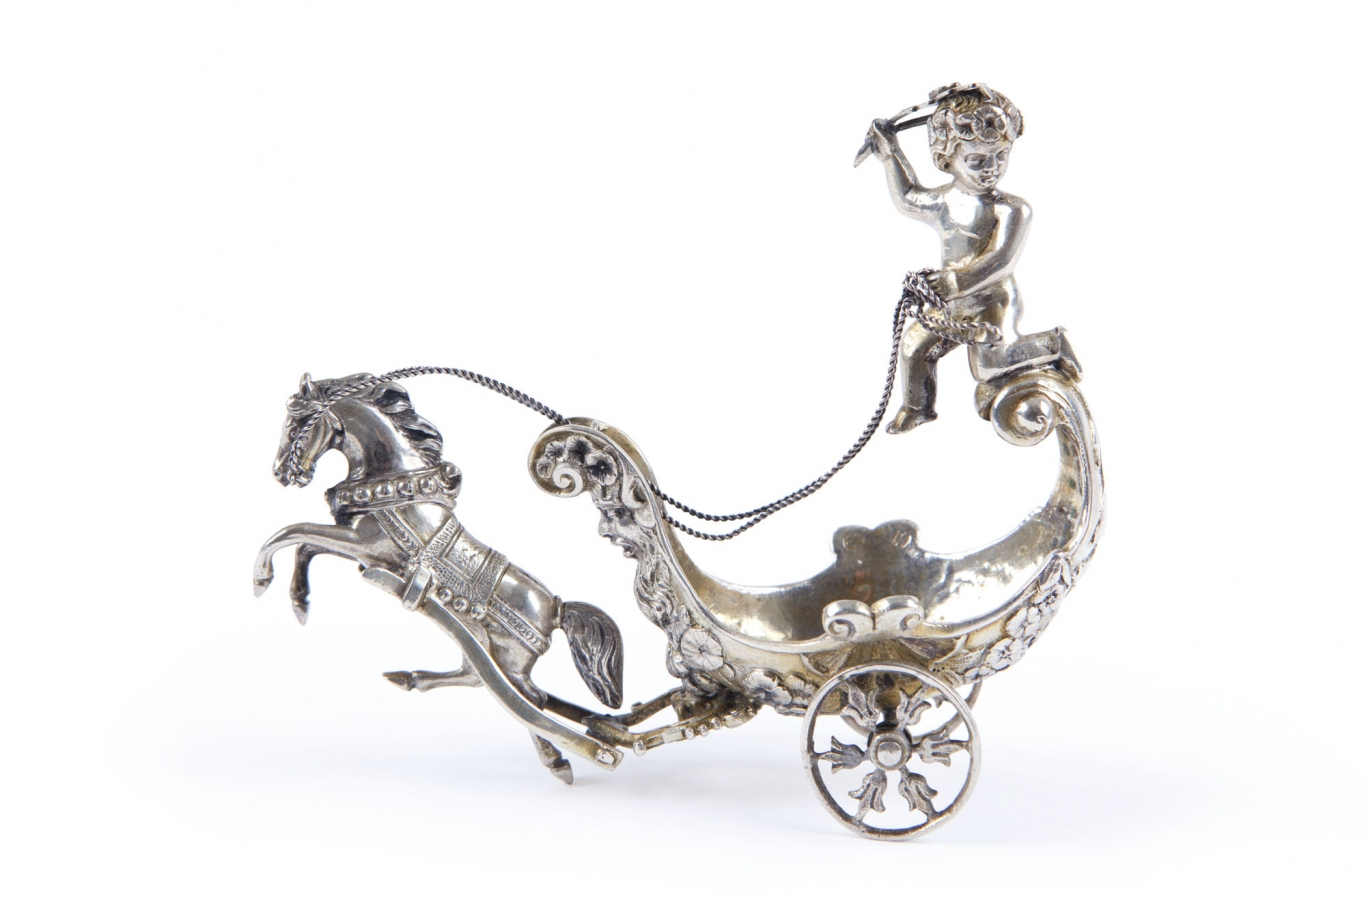 Silver stylised horse drawing a chariot.